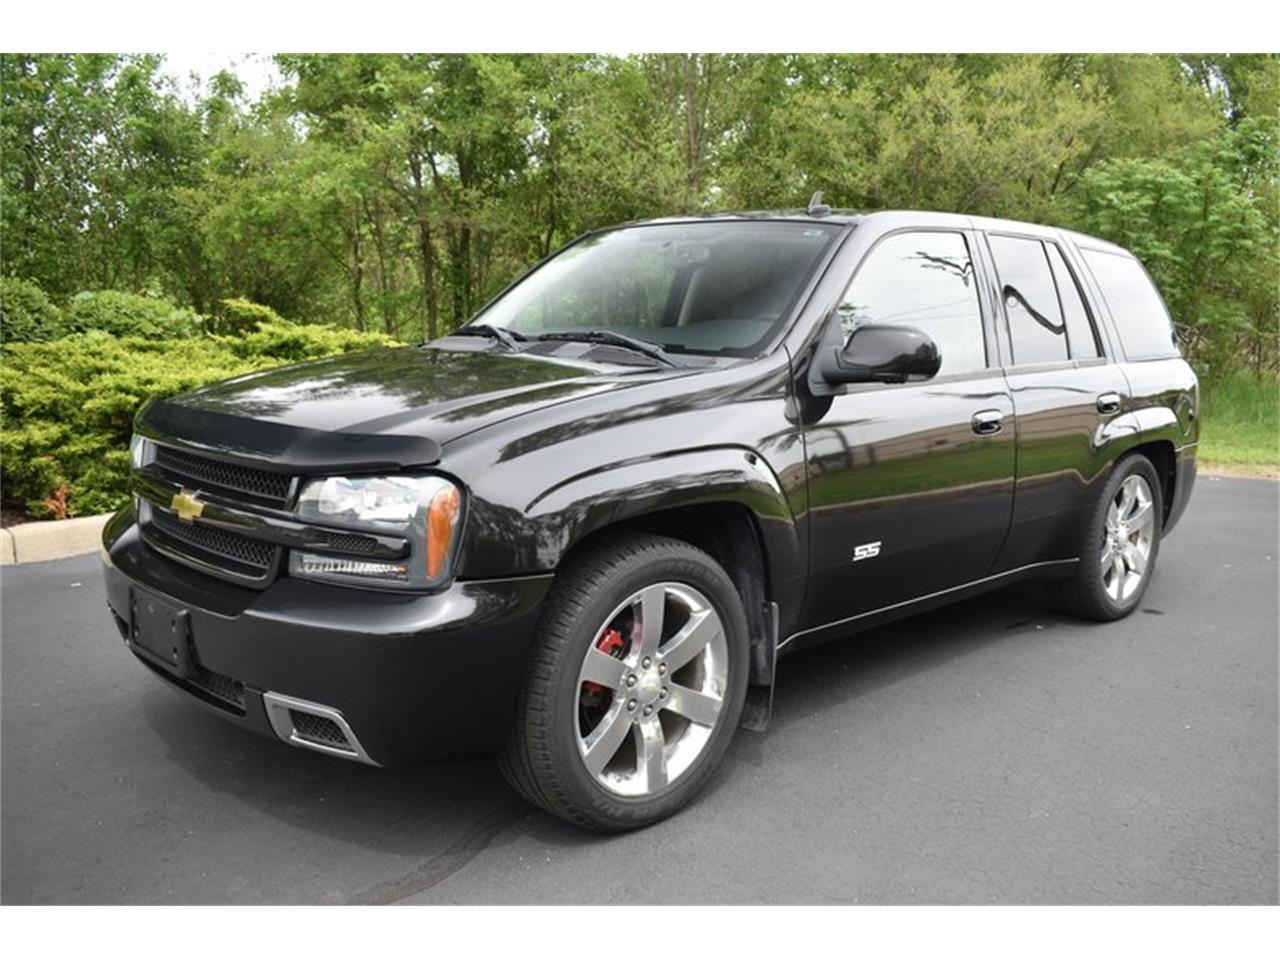 2008 Chevrolet Trailblazer (CC-1355126) for sale in Elkhart, Indiana